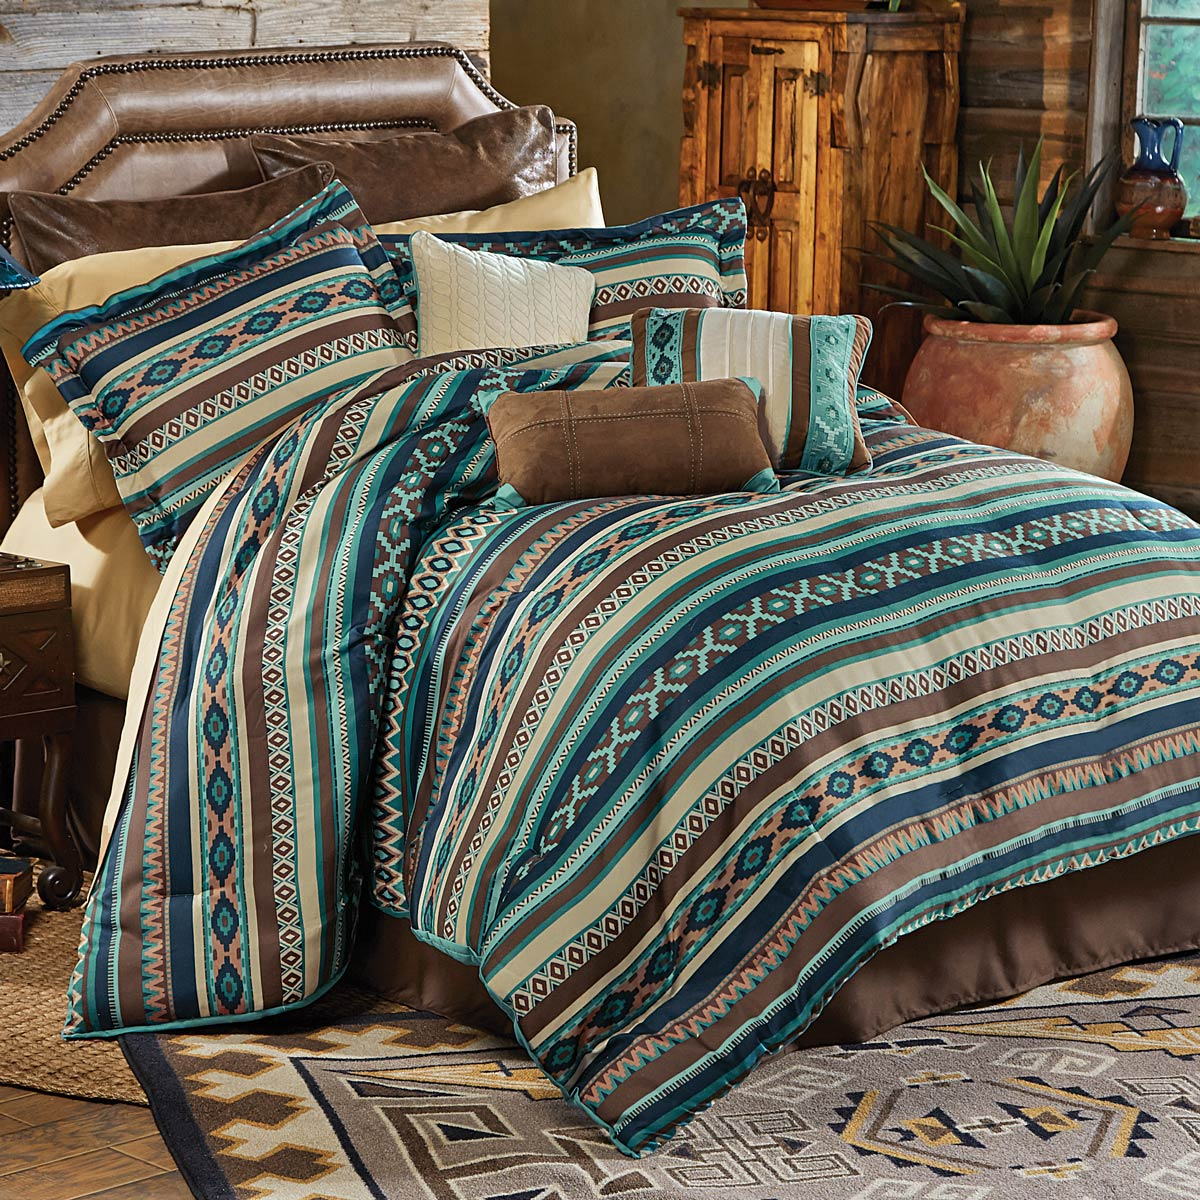 Western King Size Bedding Sets.Turquoise River Bed Set King